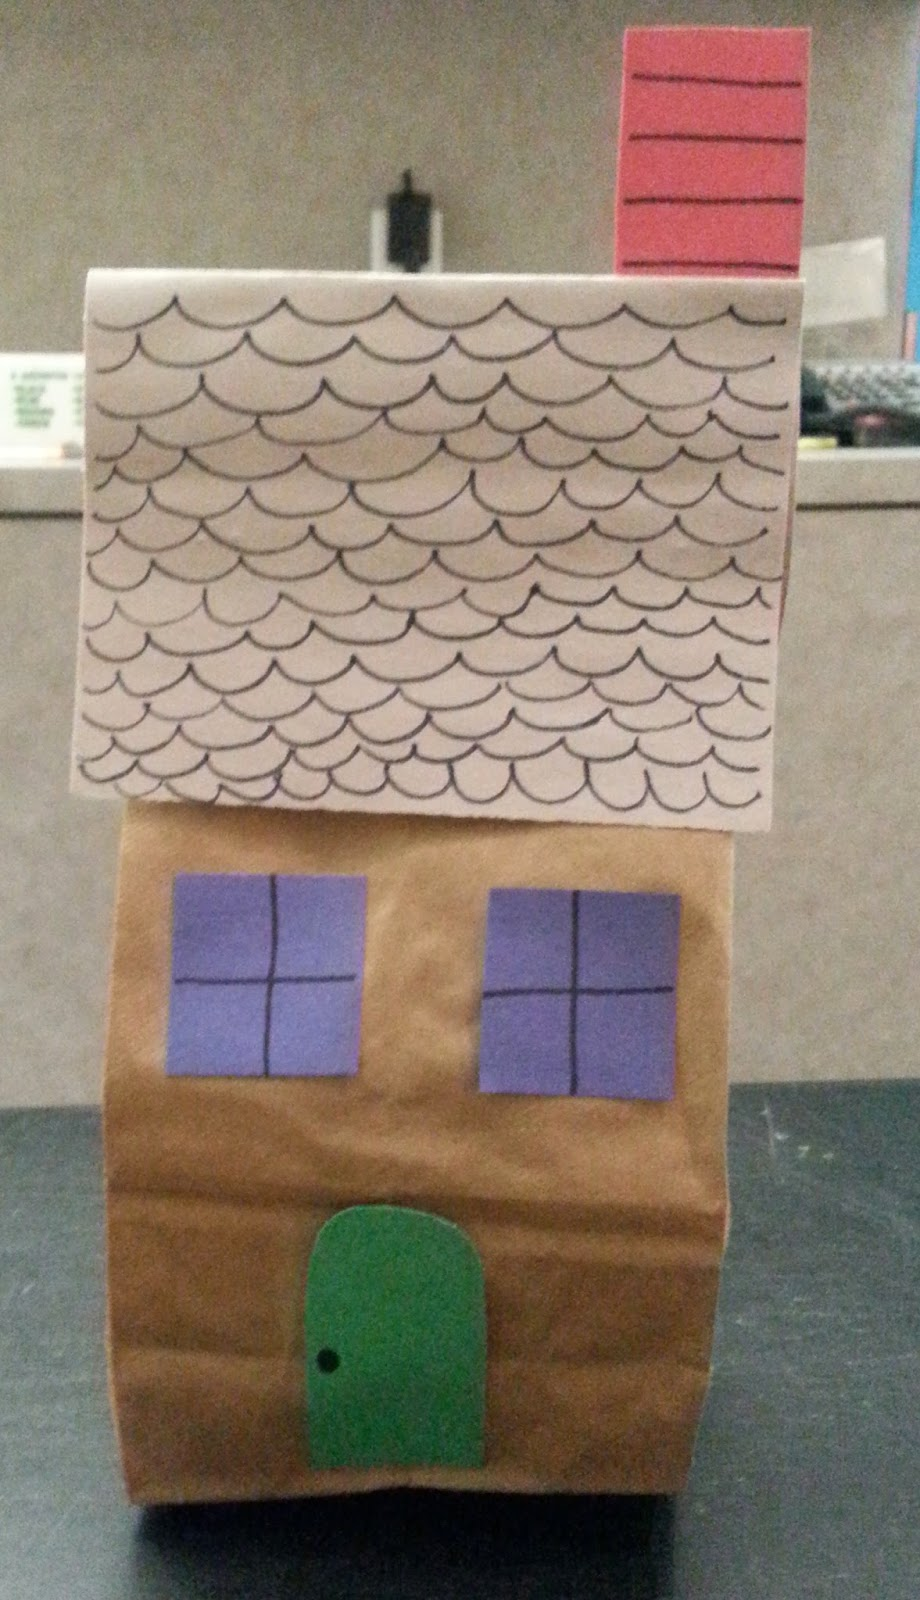 Miss barbara at the library houses homes storytime our craft this week was simple but very fun a paper bag house we used magazine paper to stuff our houses then colored accents and glued on the roof jeuxipadfo Image collections